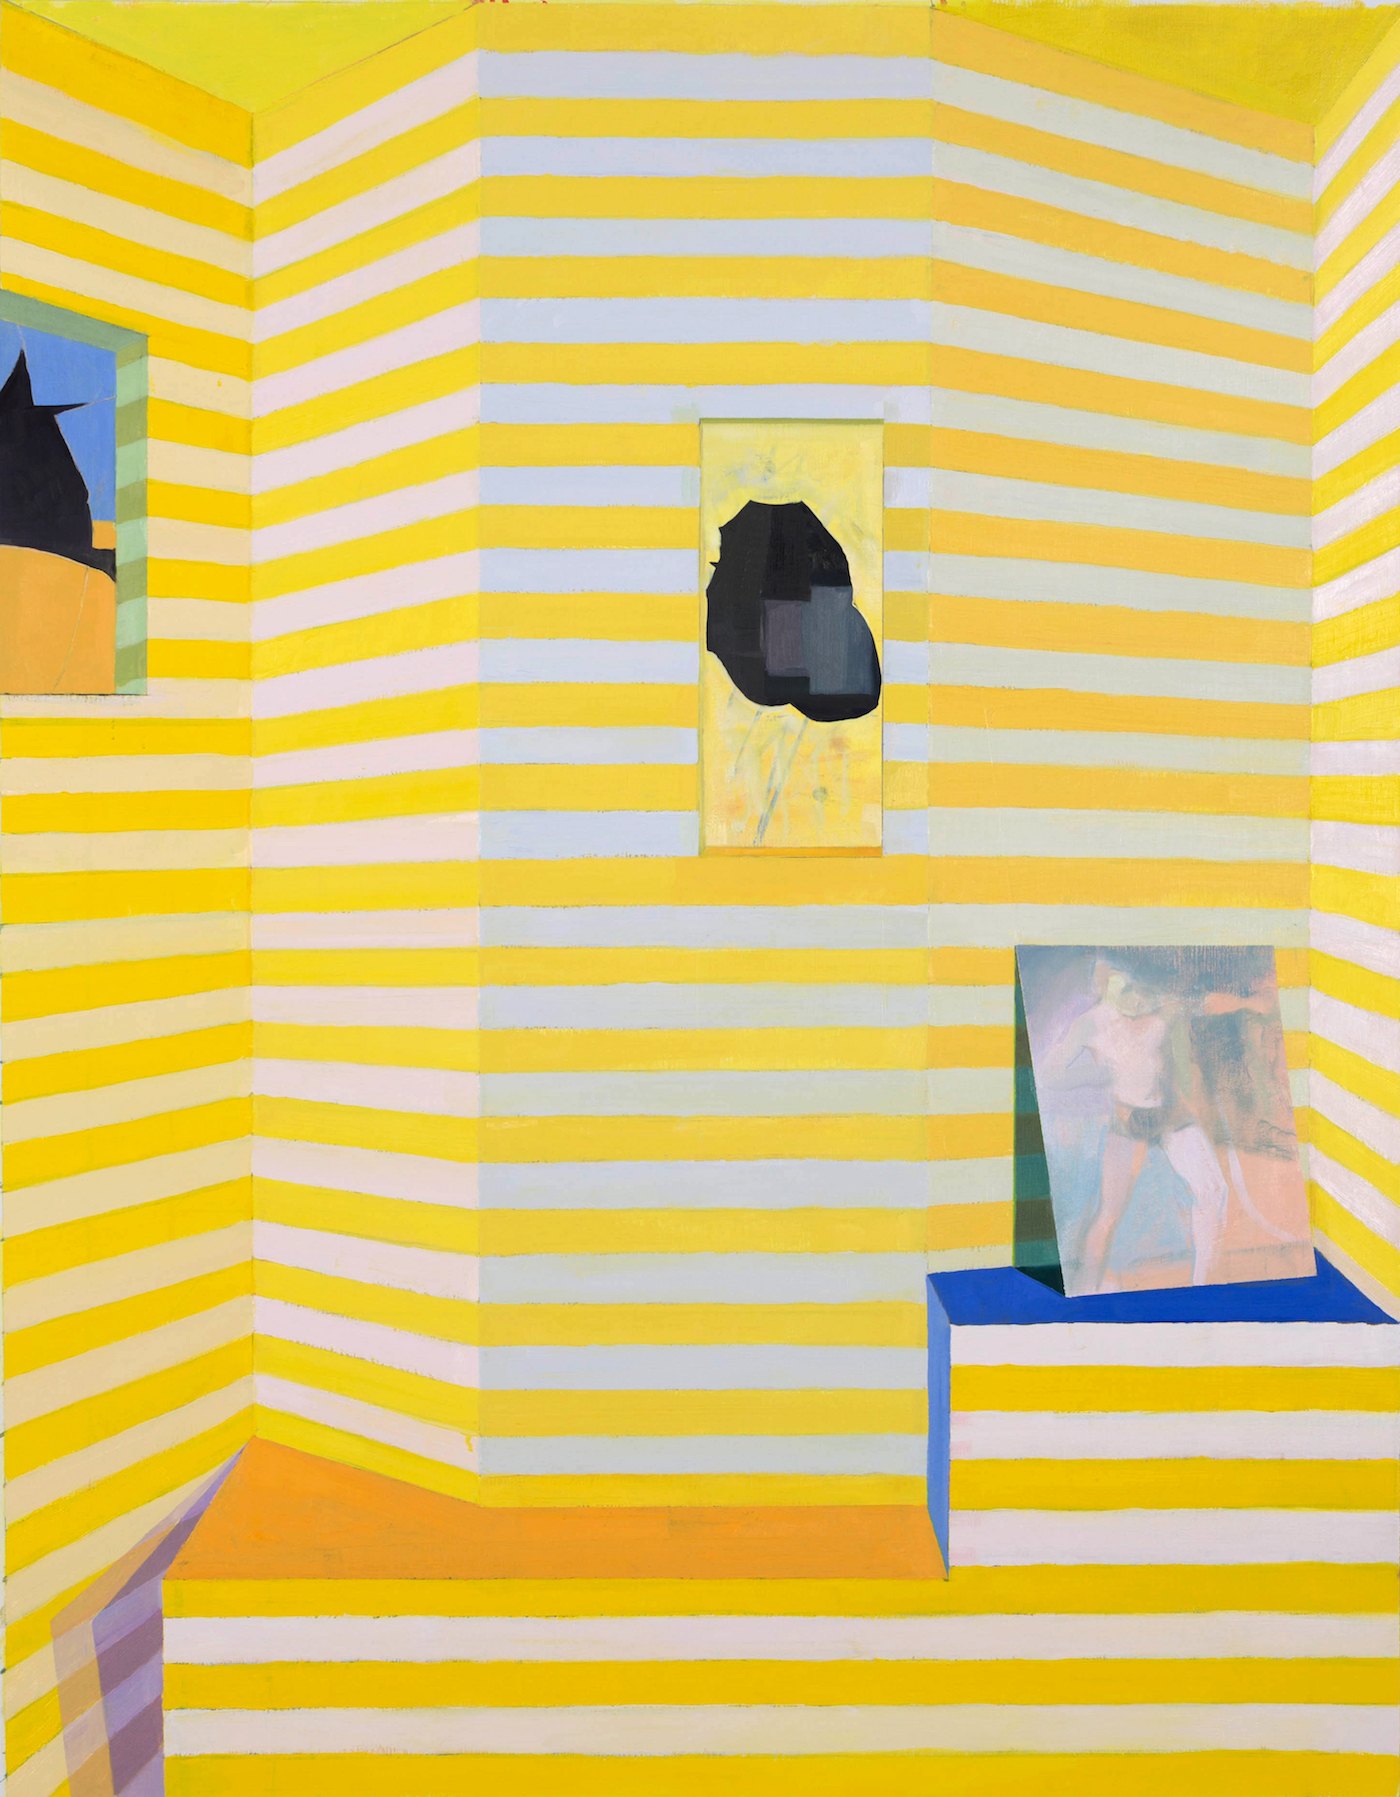 Emil Robinson, Yellow Striped Interior, 2016, oil on linen, 72 x 50 inches (courtesy of the artist)